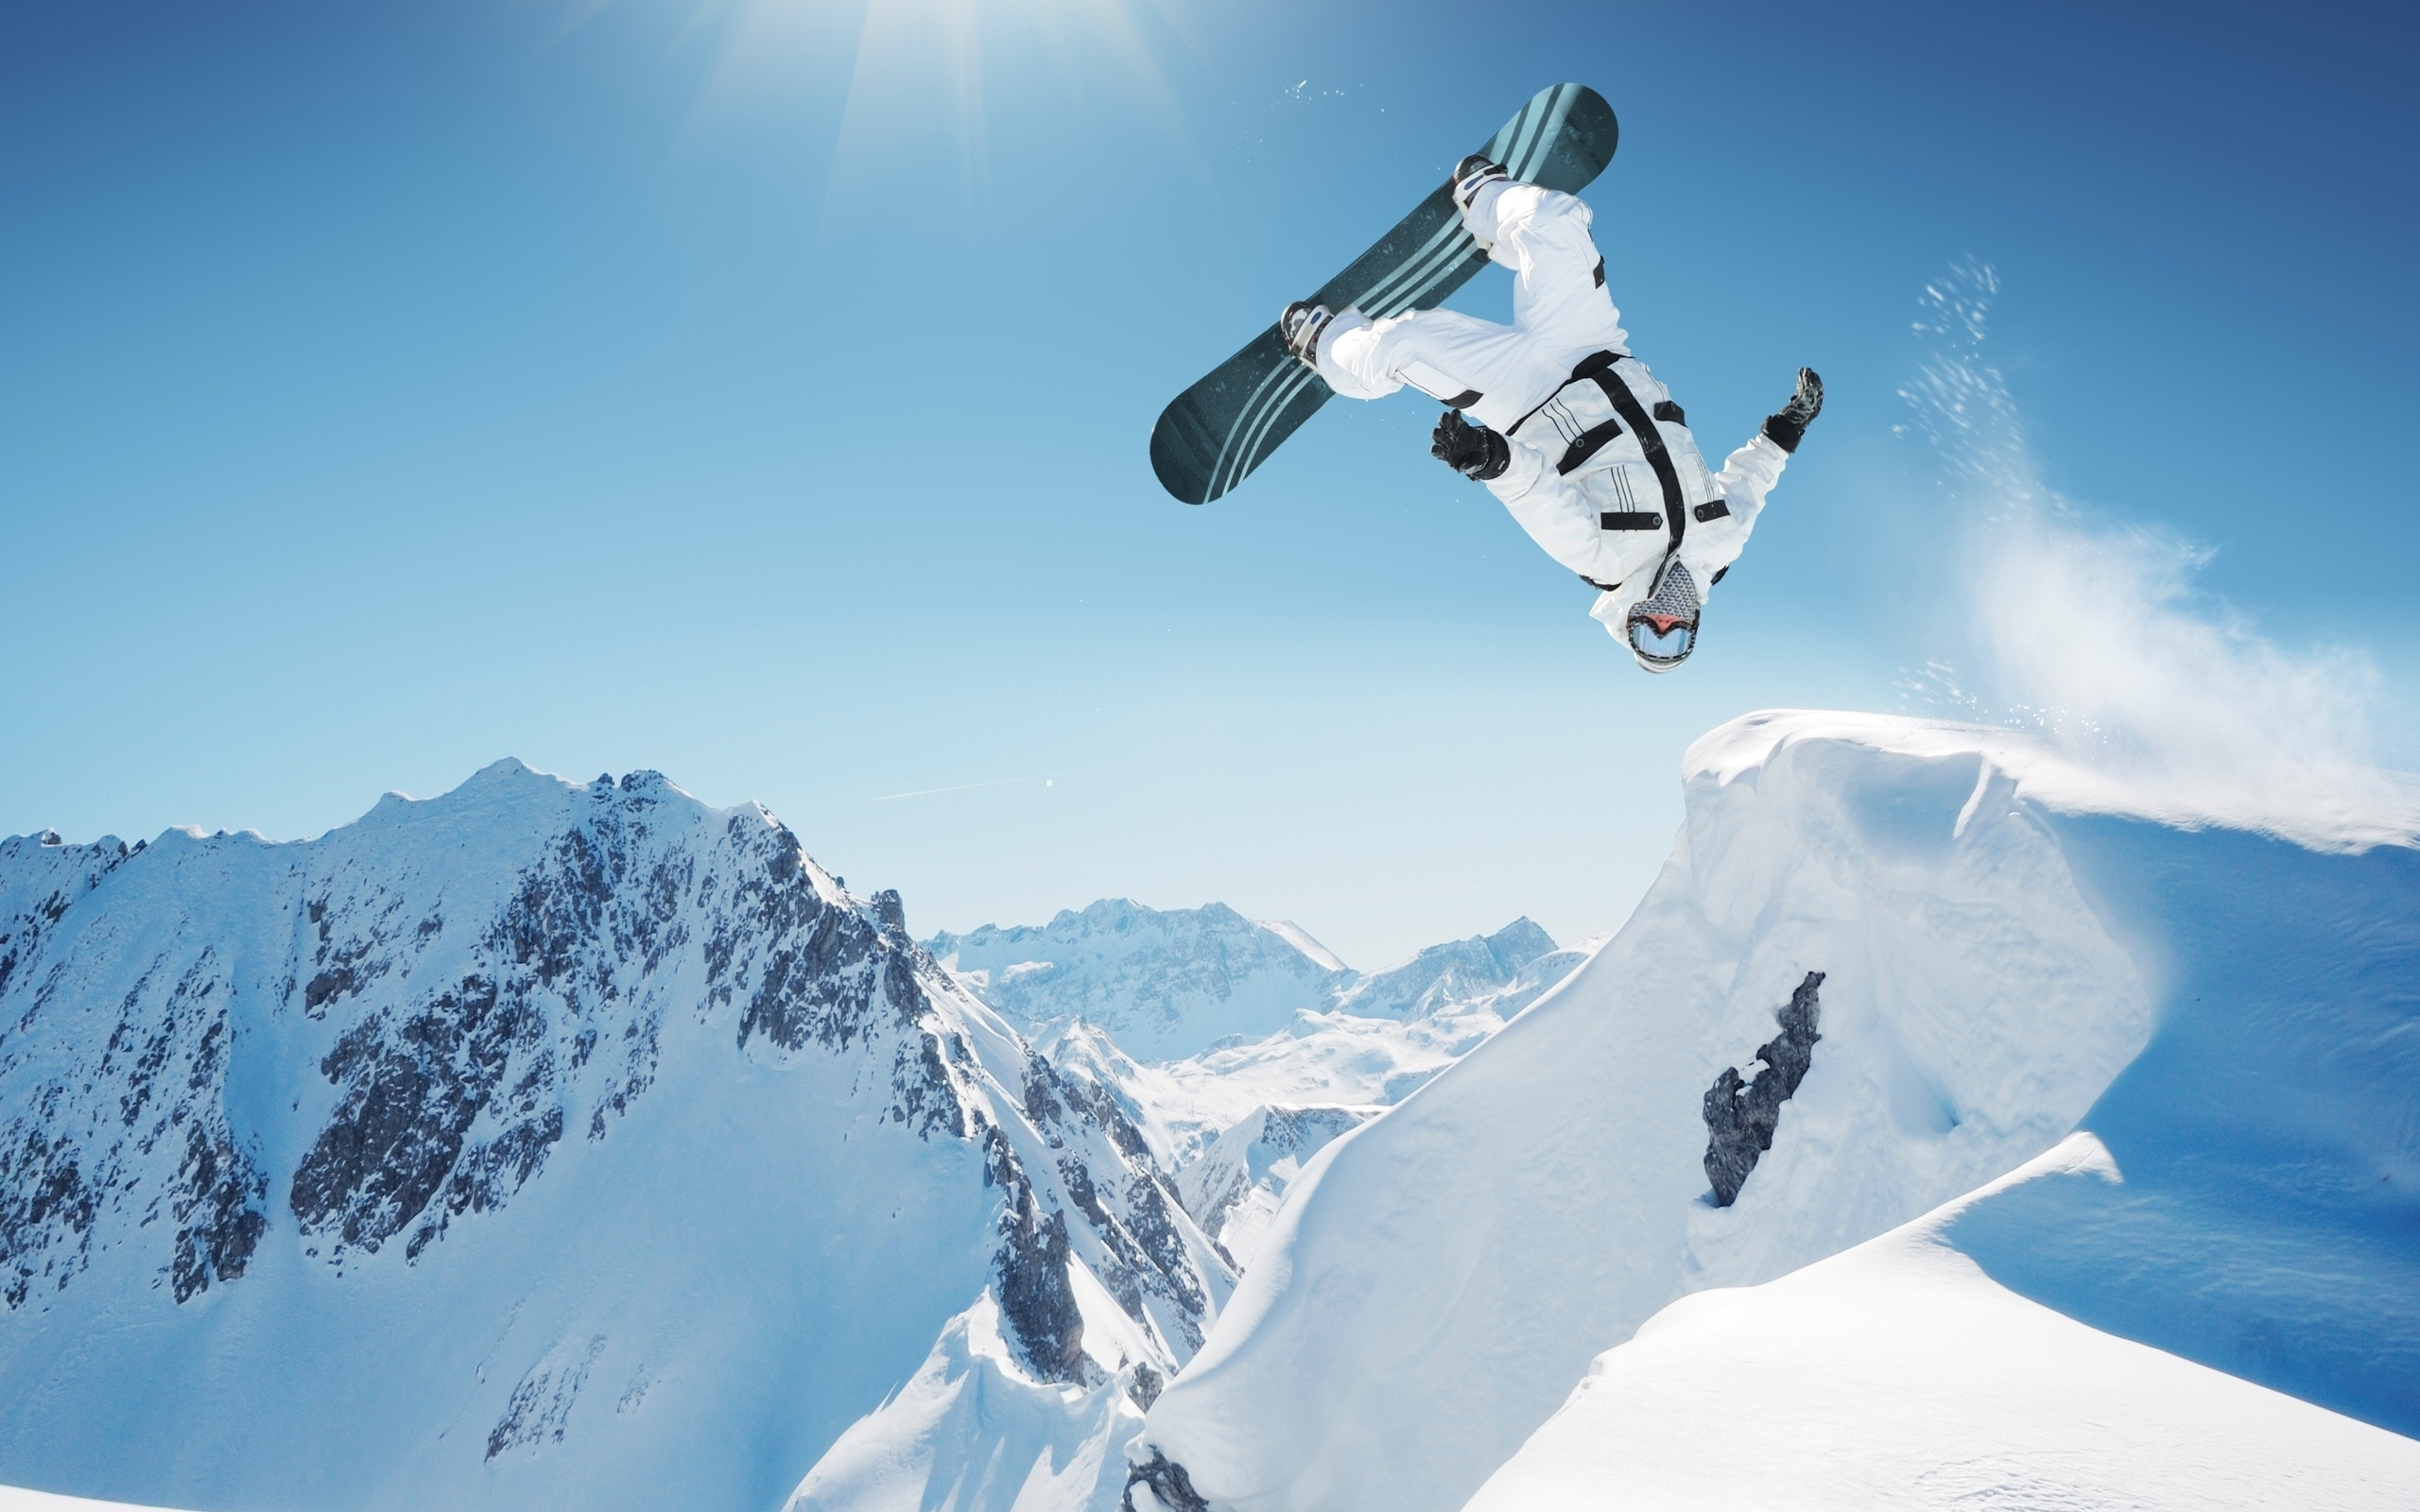 47344 download wallpaper Sports, Landscape, Mountains, Snow, Snowboarding screensavers and pictures for free